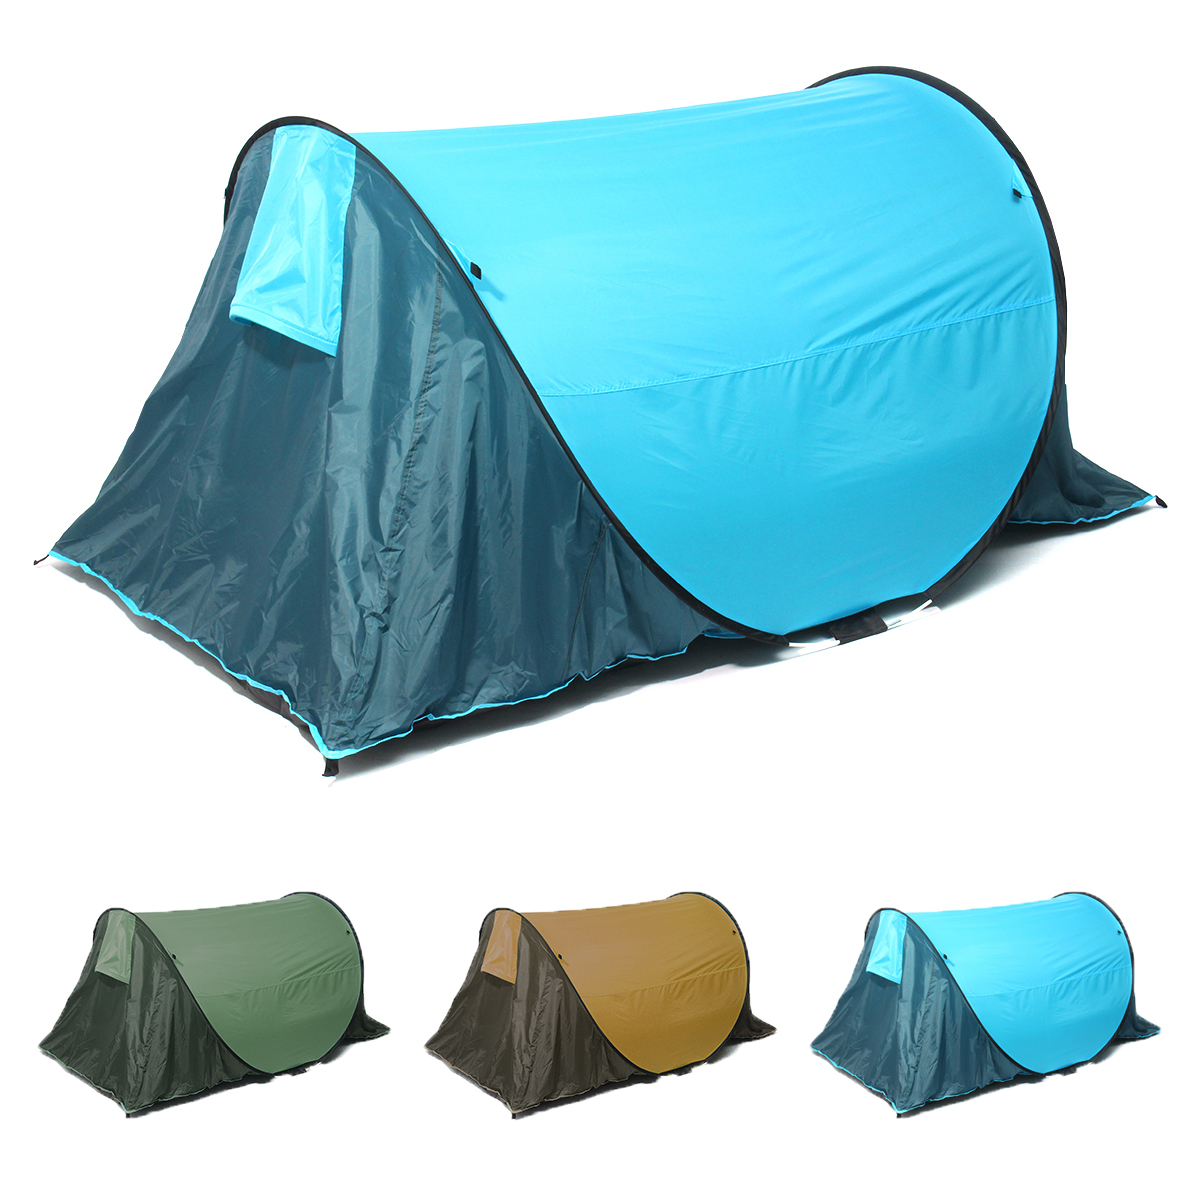 Super Light 1 Layer Tent Portable 2 Person Single Tents UV Protection Tents 4 Seasons Camping Outdoor Tent for Outdoor цена